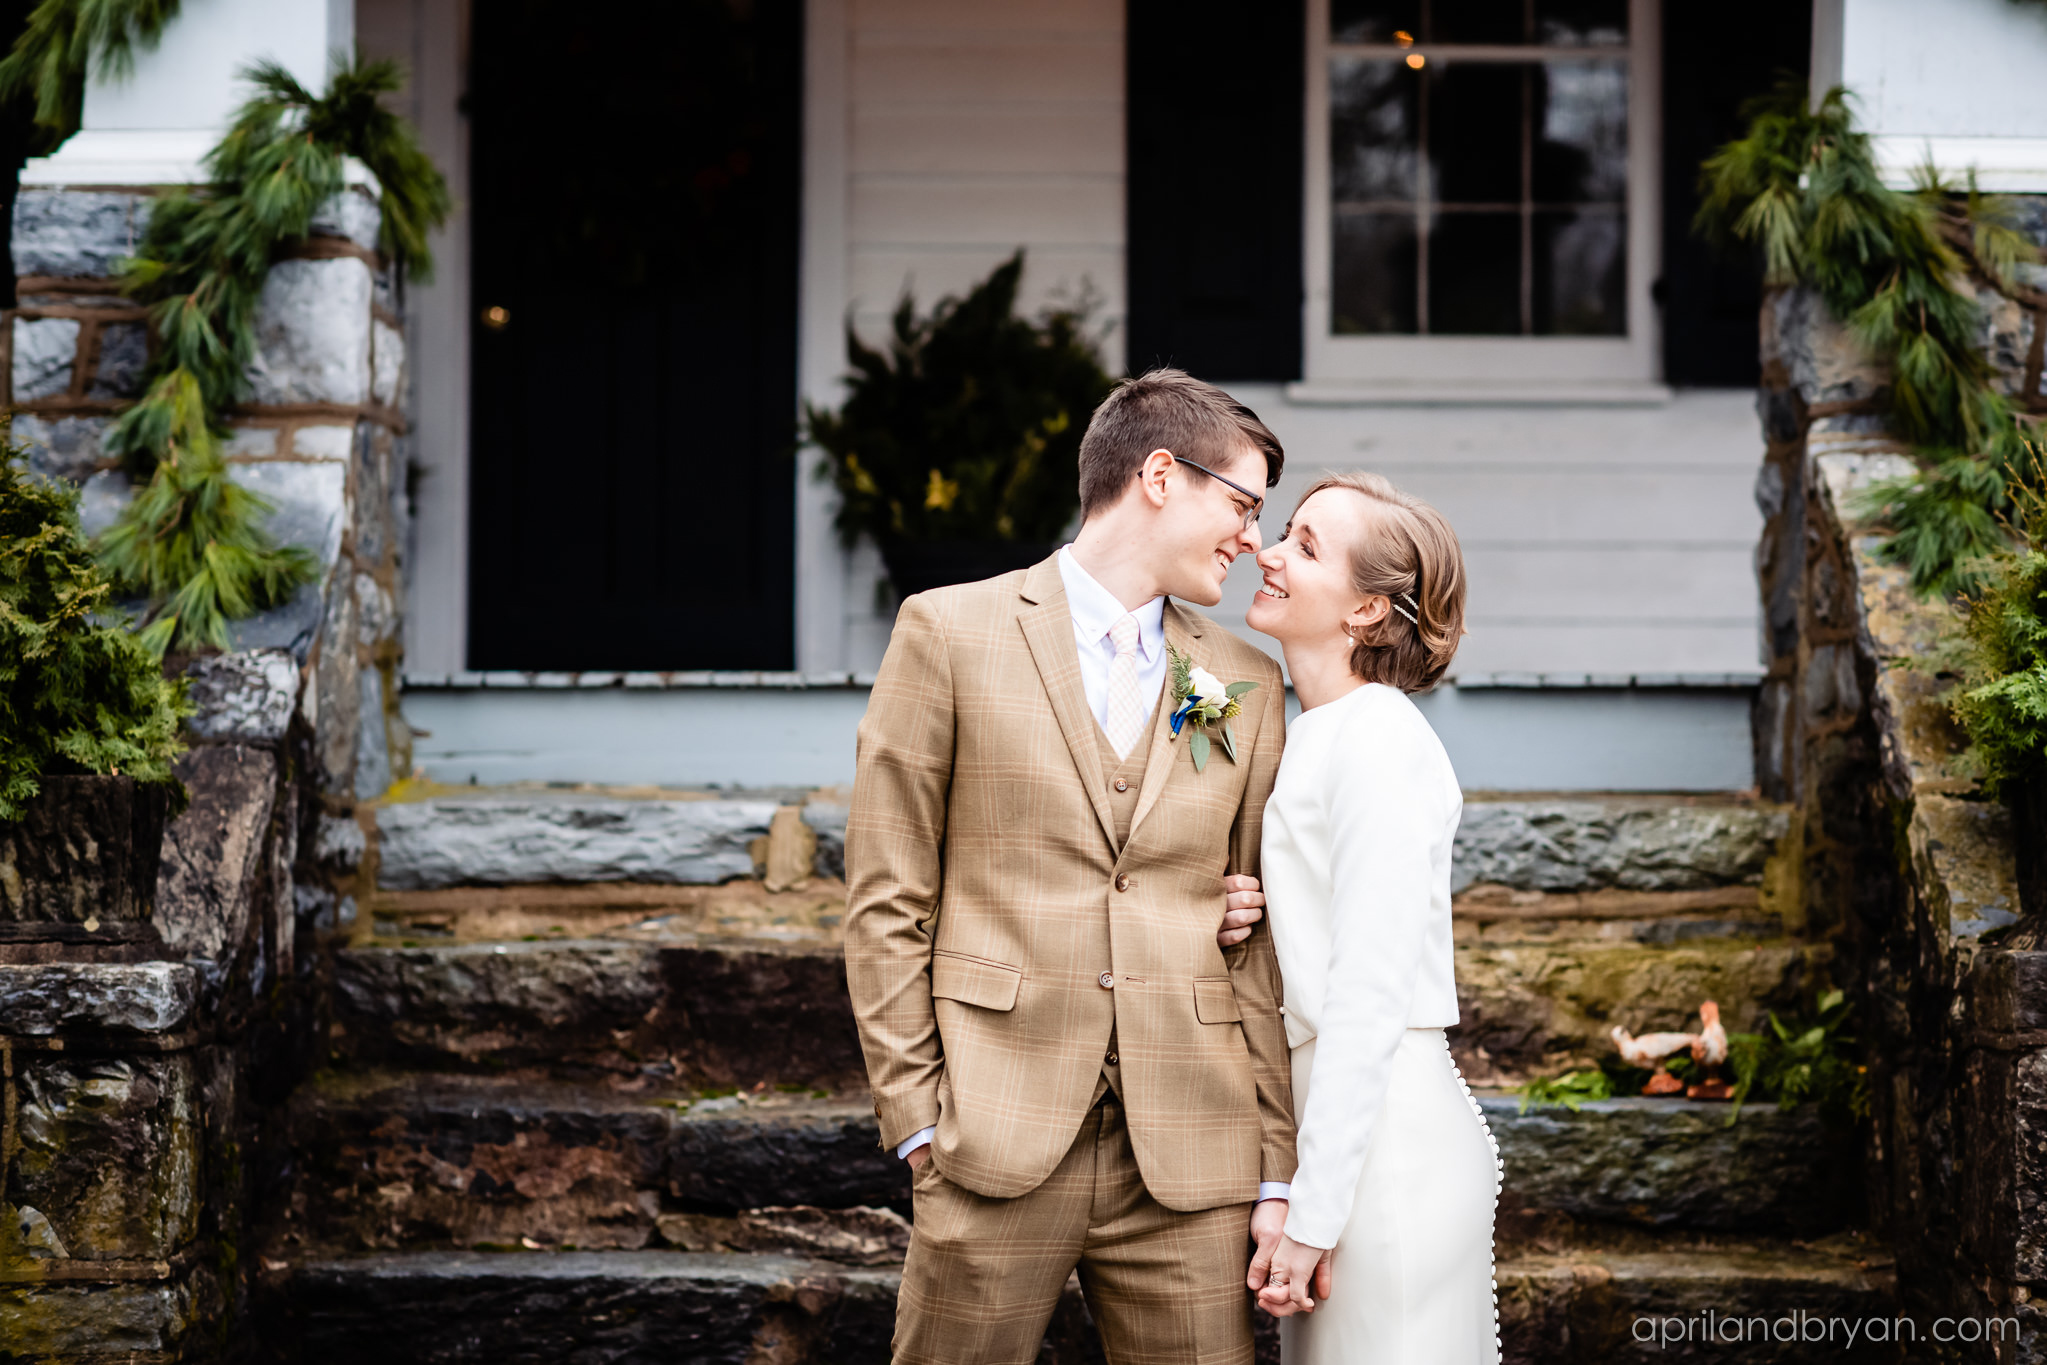 A light jacket that matches the fabric of your wedding dress is perfect for a Fall wedding. Hannah and Ethan Farrell had their classic romantic styled wedding held at their home in Mount Joy, followed by a reception at the catacombs underneath Bube's Brewery. Photographed by April & Bryan Photography, the couple had the opportunity to showcase their early 1900s style and accommodate a small guest list. Featured on Dream Weddings.